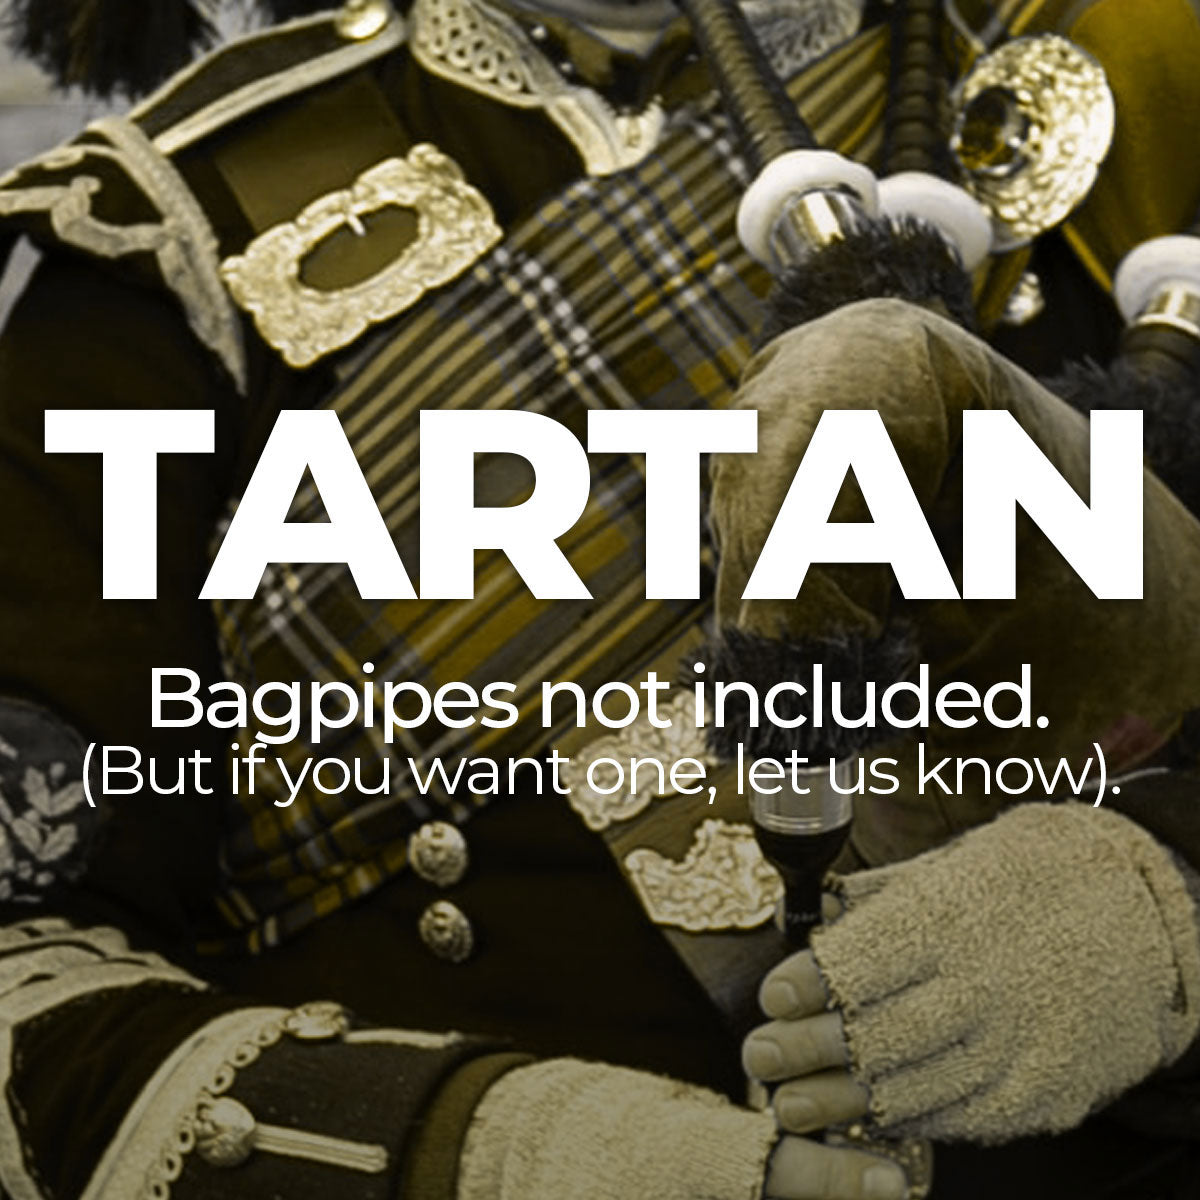 Tartan Collection - Bagpipes not Included. *But if you want one let us know.